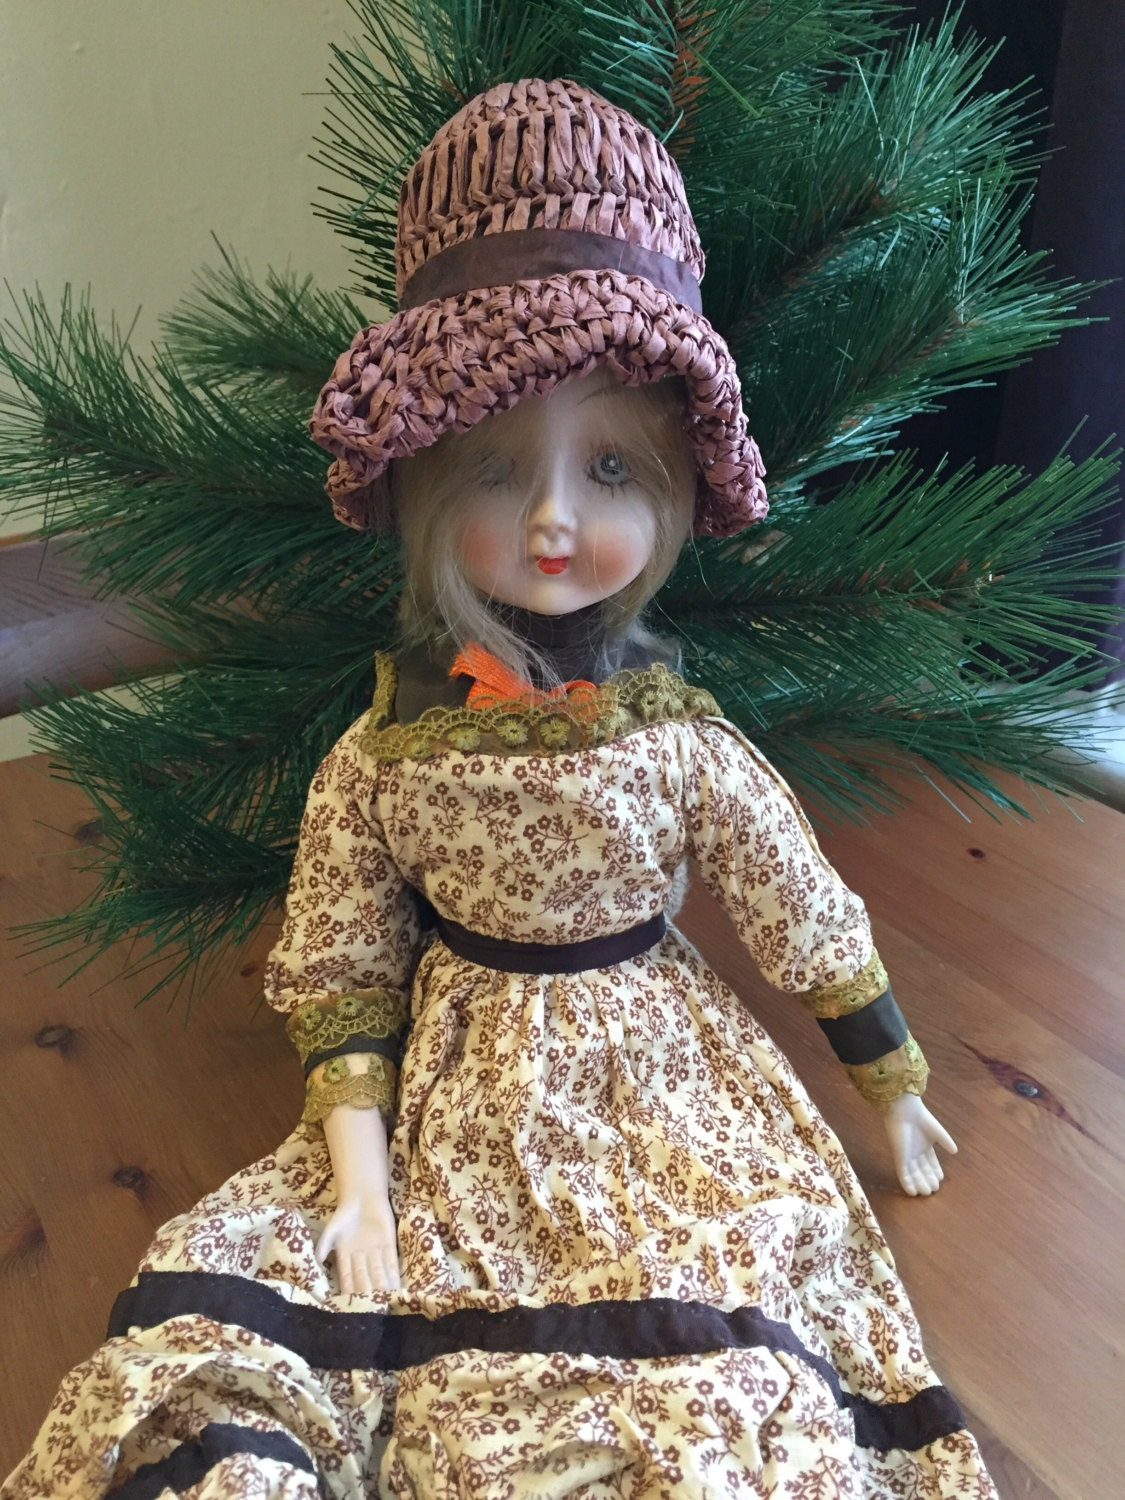 Antique dolls value - deals on 1001 Blocks